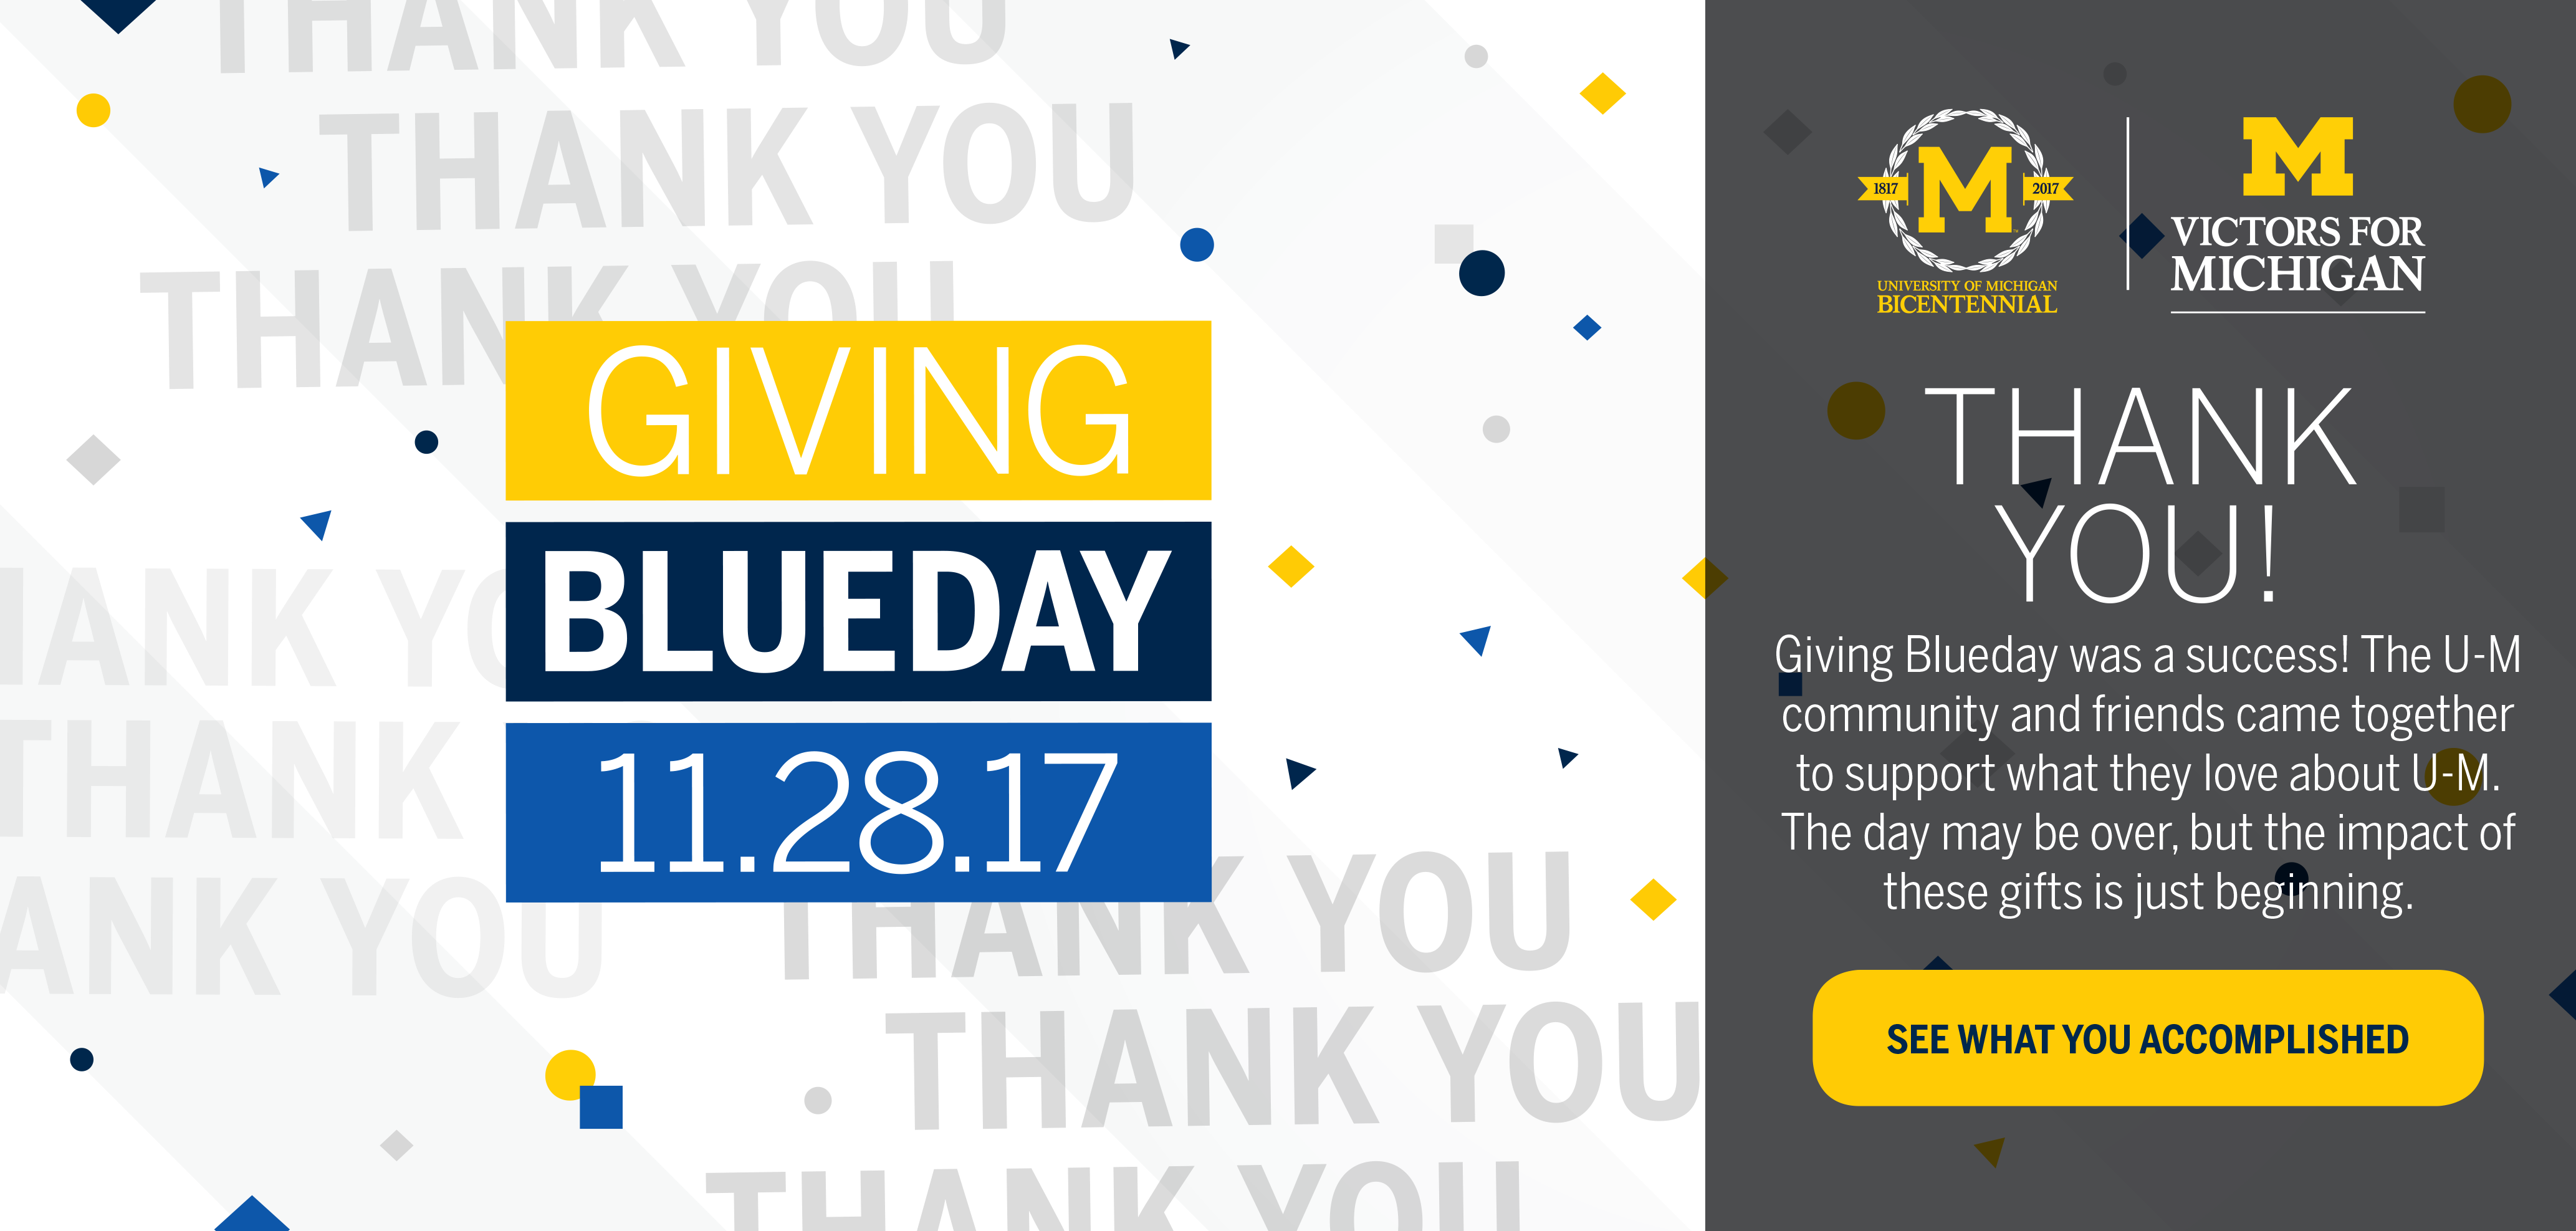 thumb:1305, href:/givingblueday, alt: Thank You! Giving Blueday was a success! The U-M community and friends came together to support what they love about U-M. The day may be over, but the impact of these gifts is just beginning.